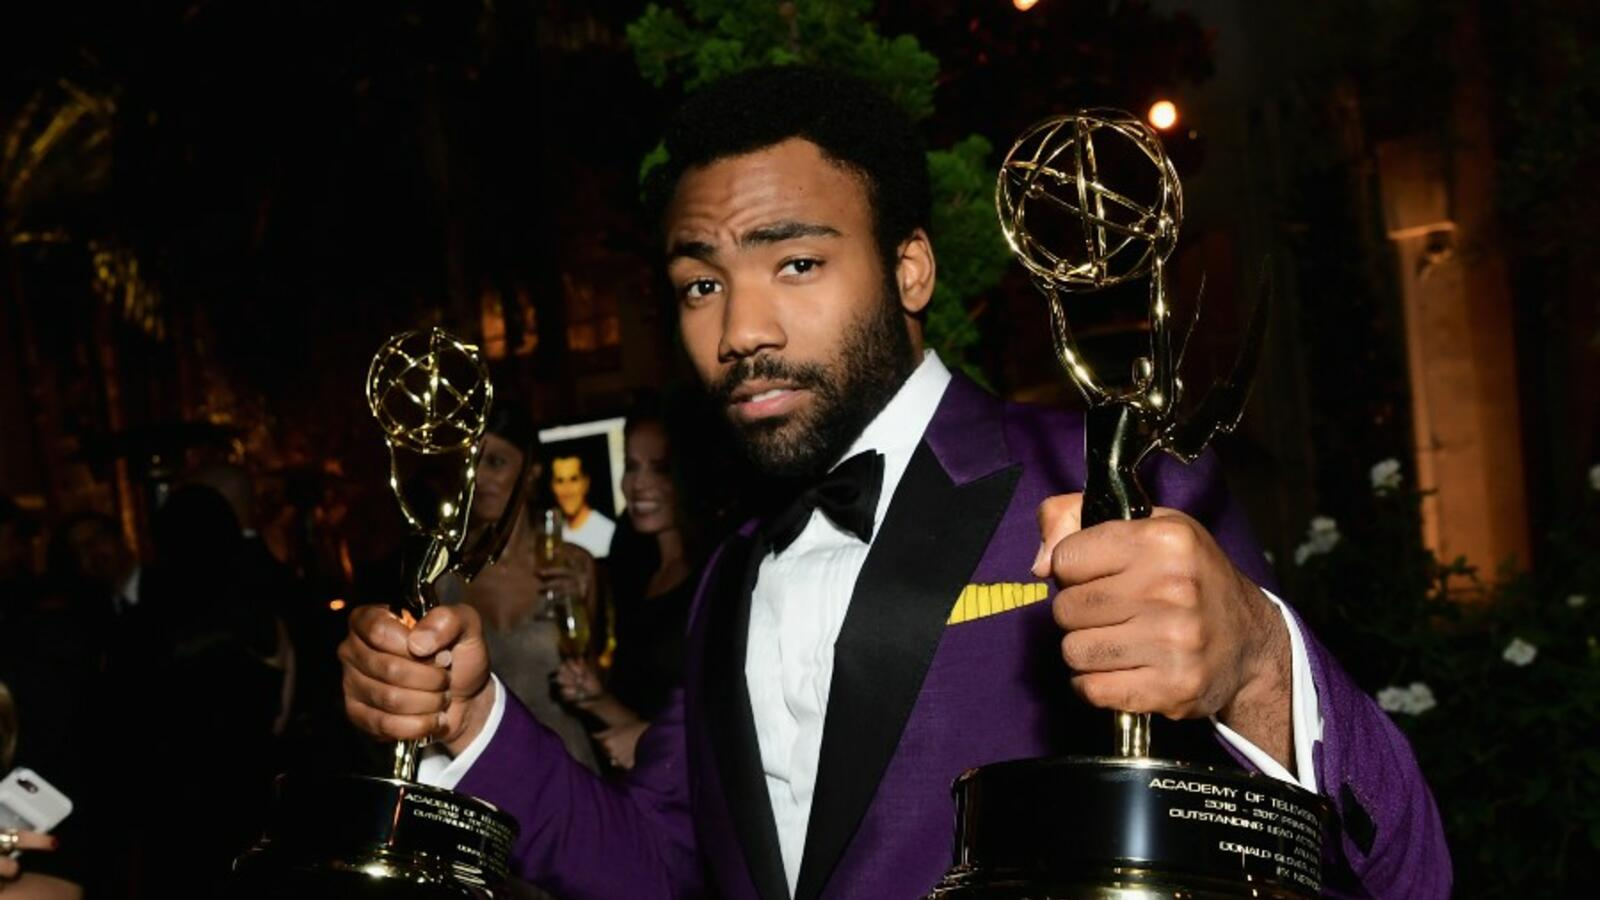 Voices And Vision: These Rappers & Soul Singers Are Emmy Award Winners, Too